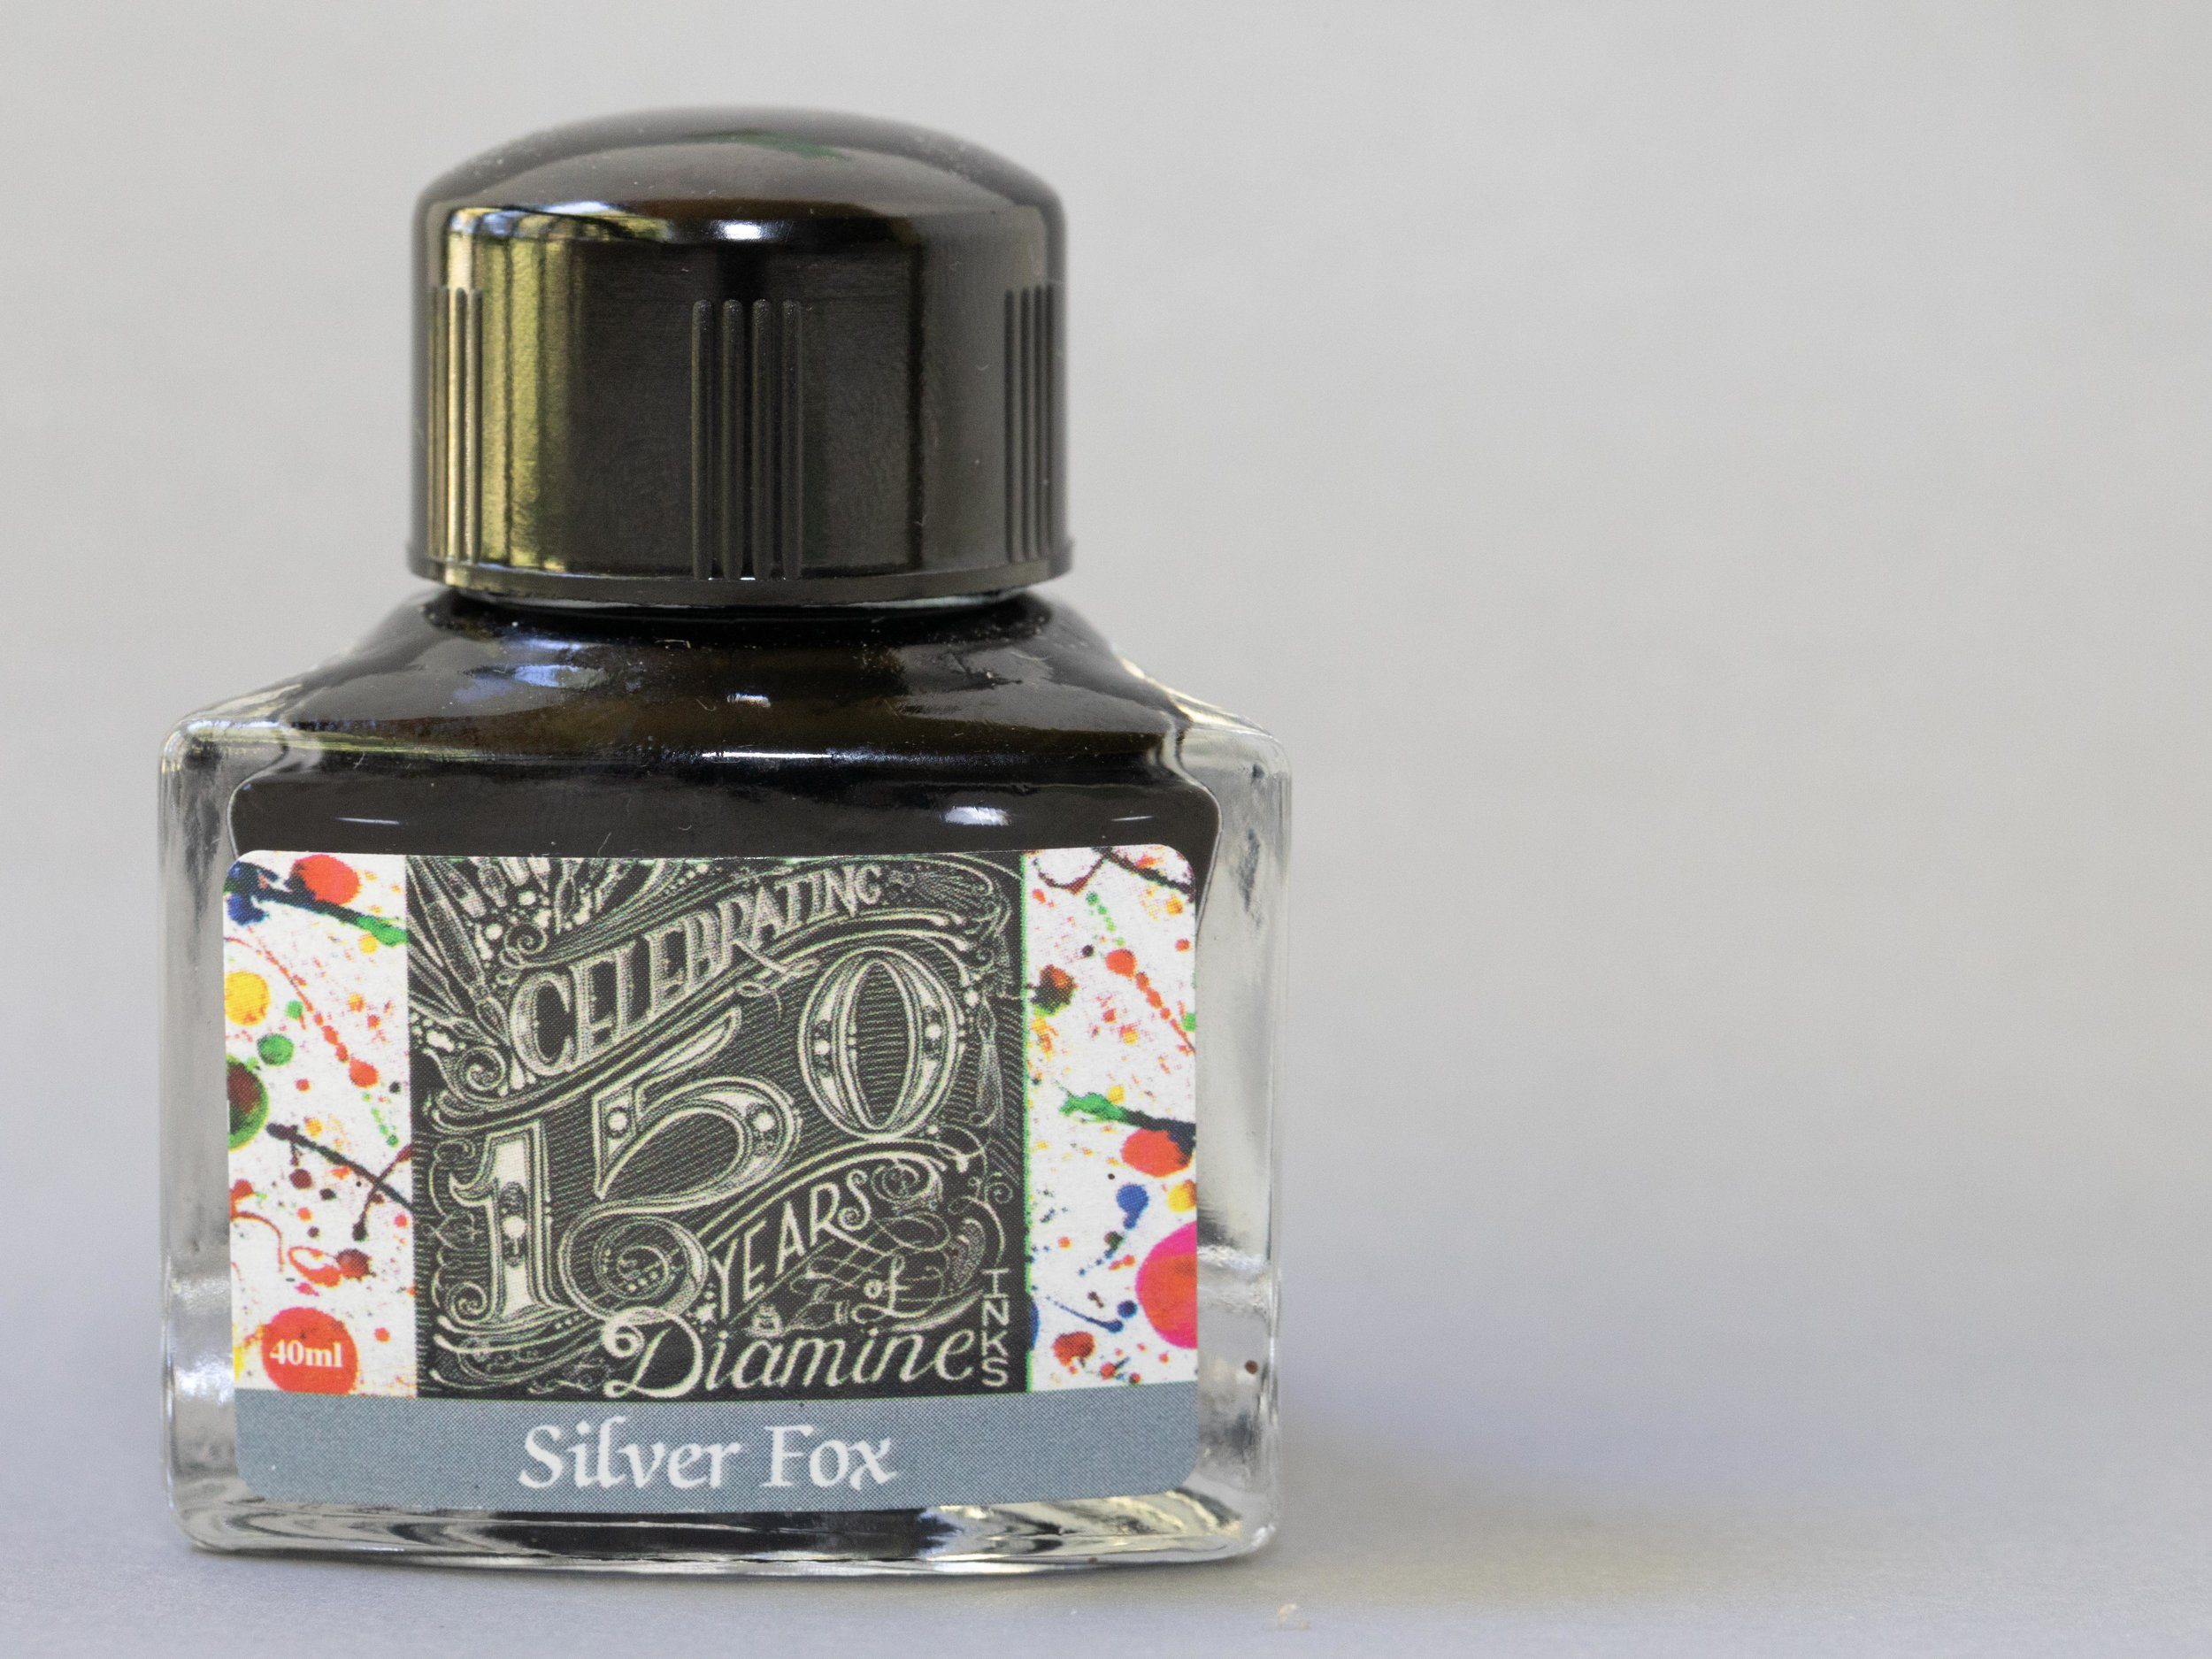 The bottle holds 40ml of ink, and has a triangular shape.